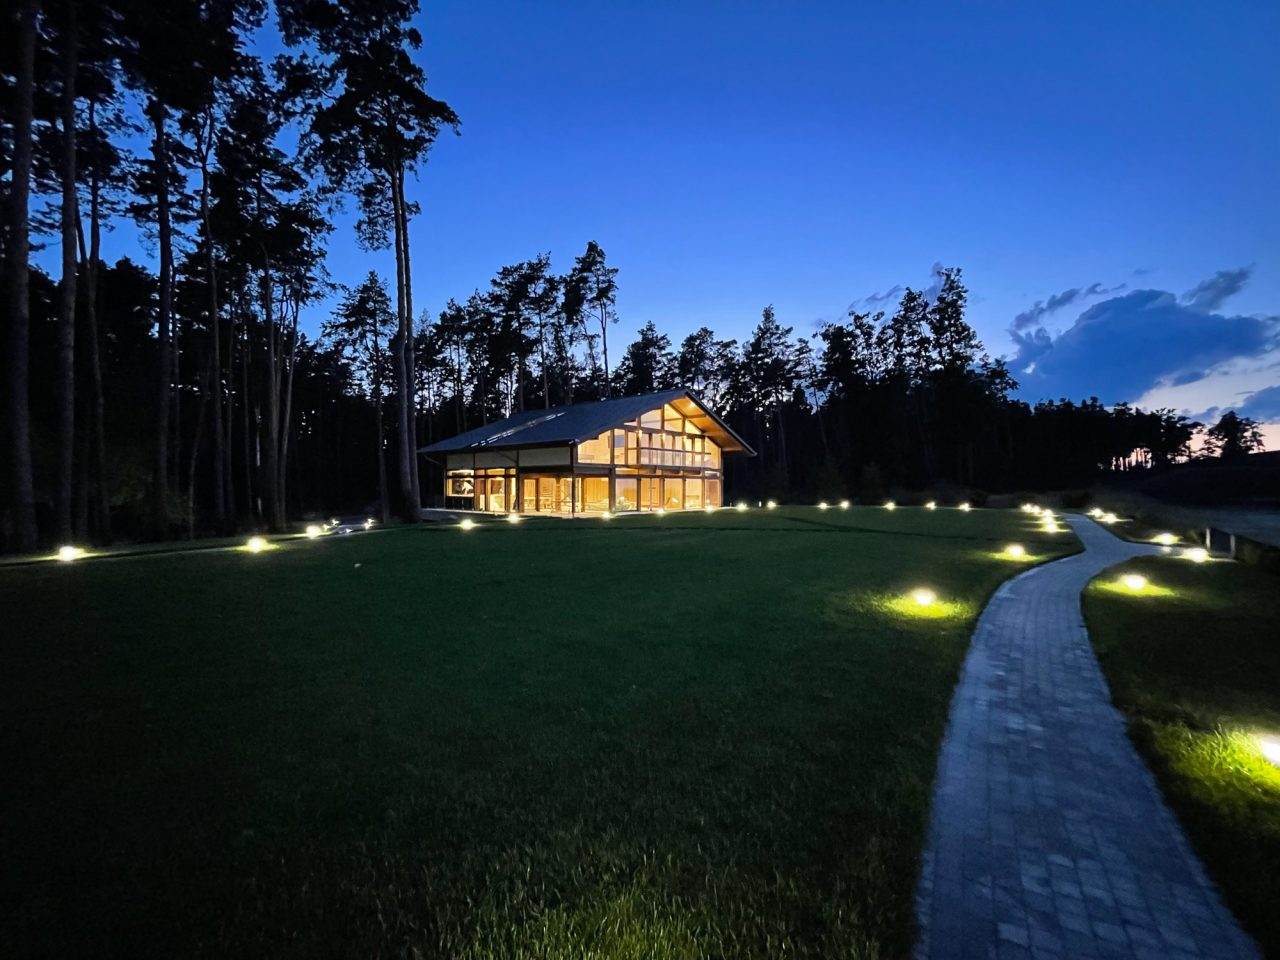 Hlass_house_KAGER - Hurii_28